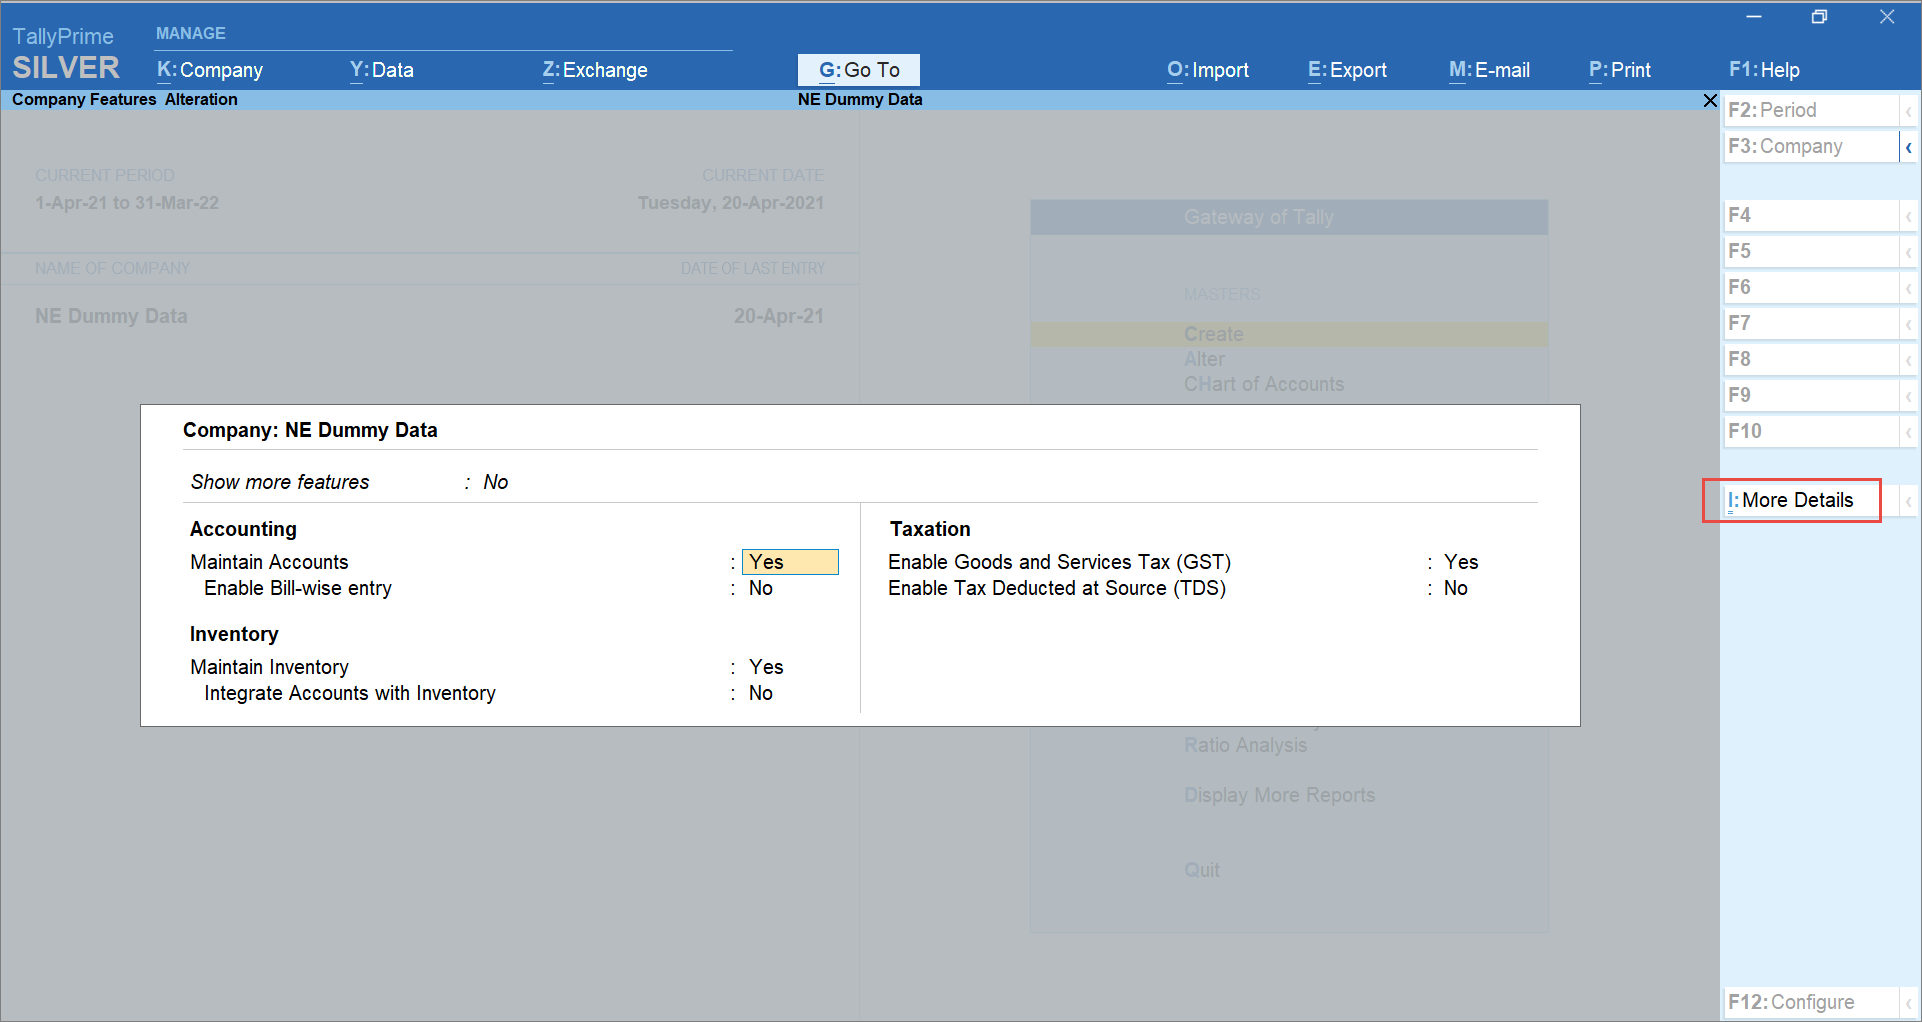 More Details Under the F11 (Company Features) Screen in TallyPrime